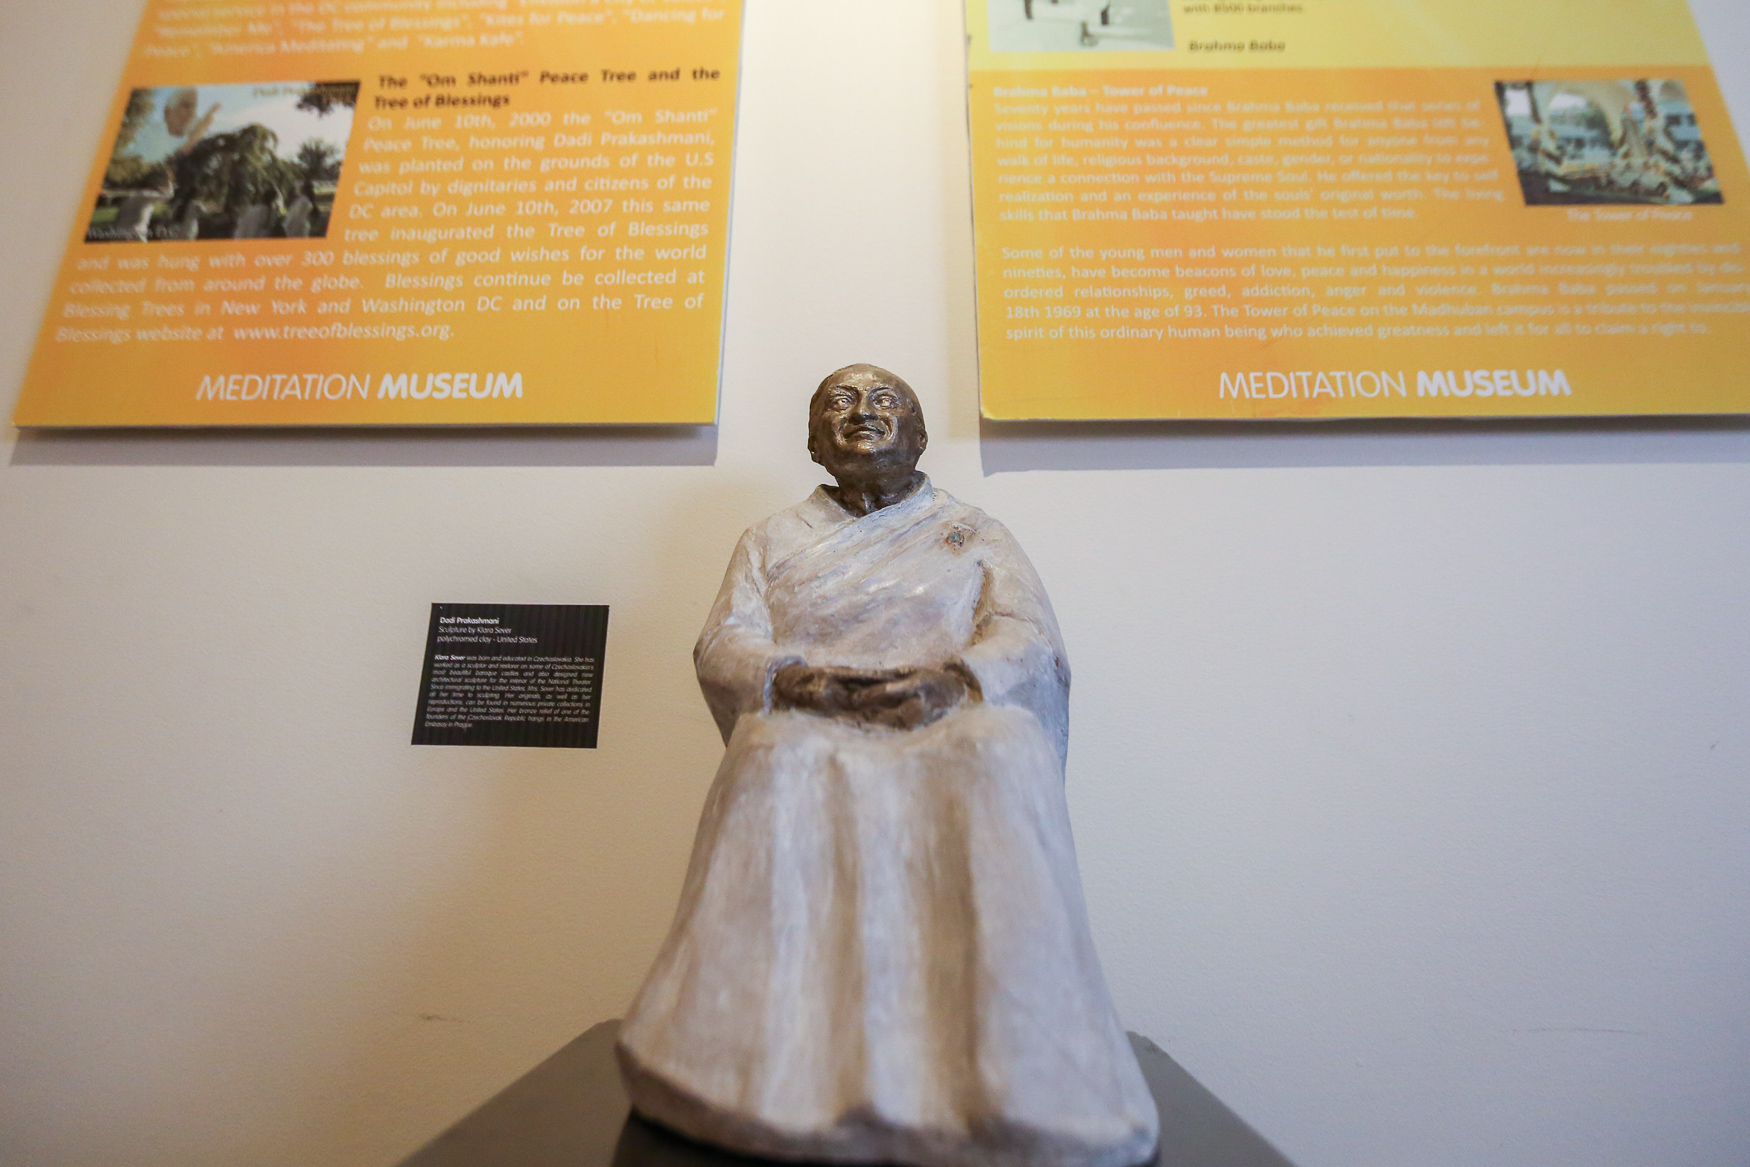 A statue of{&nbsp;}Lekhraj Kripalani, the founder of{&nbsp;}Brahma Kumaris. The museum's director is Sister Janet, the great great granddaughter of Kripalani.{&nbsp;}(Amanda Andrade-Rhoades/DC Refined)<p></p>